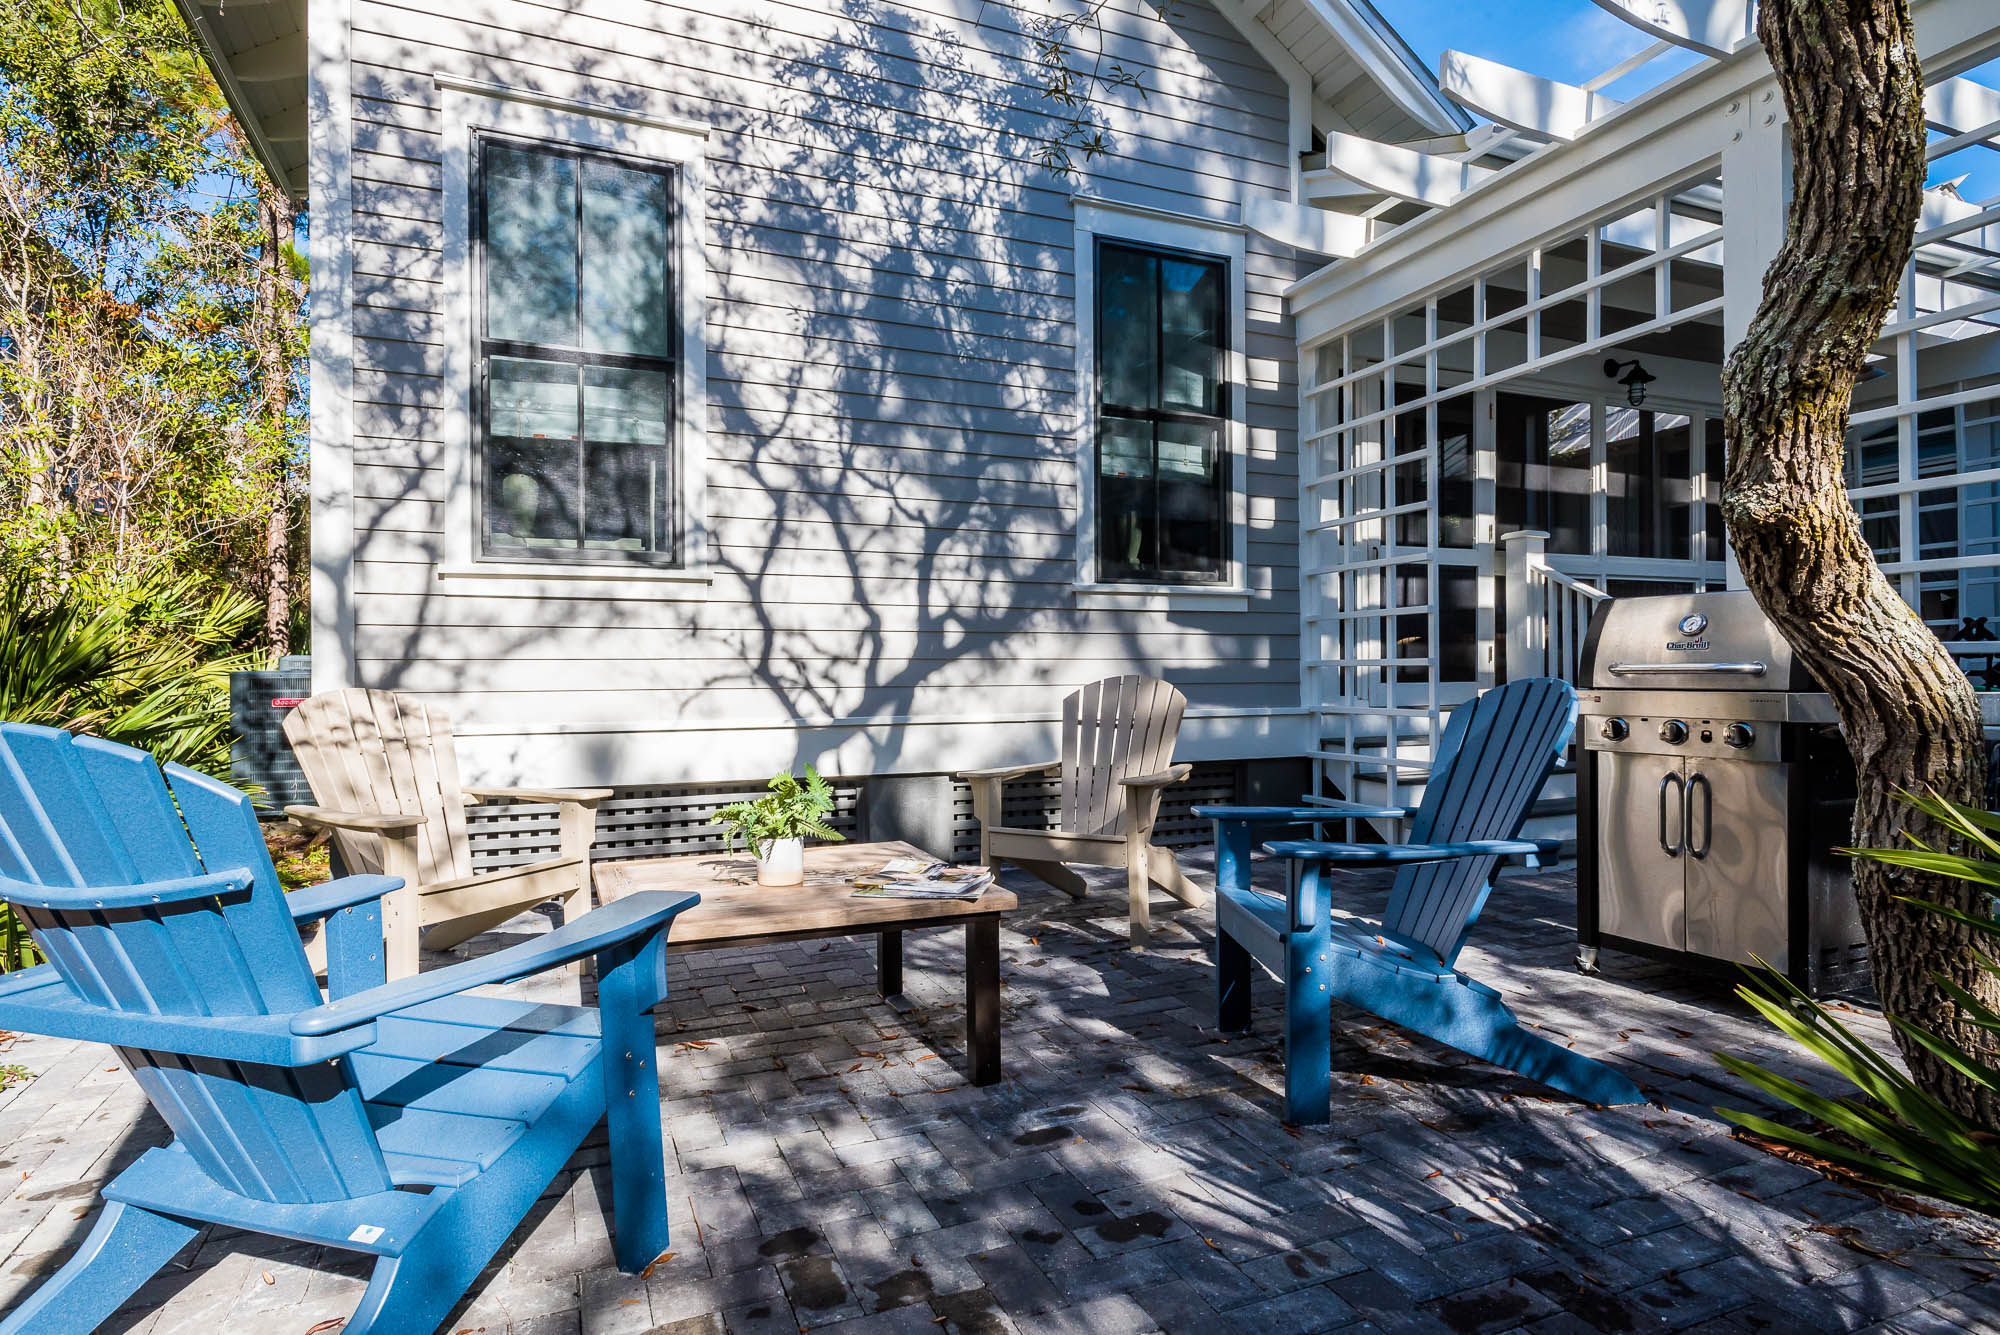 Lovely back patio with adirondack chairs and a grill